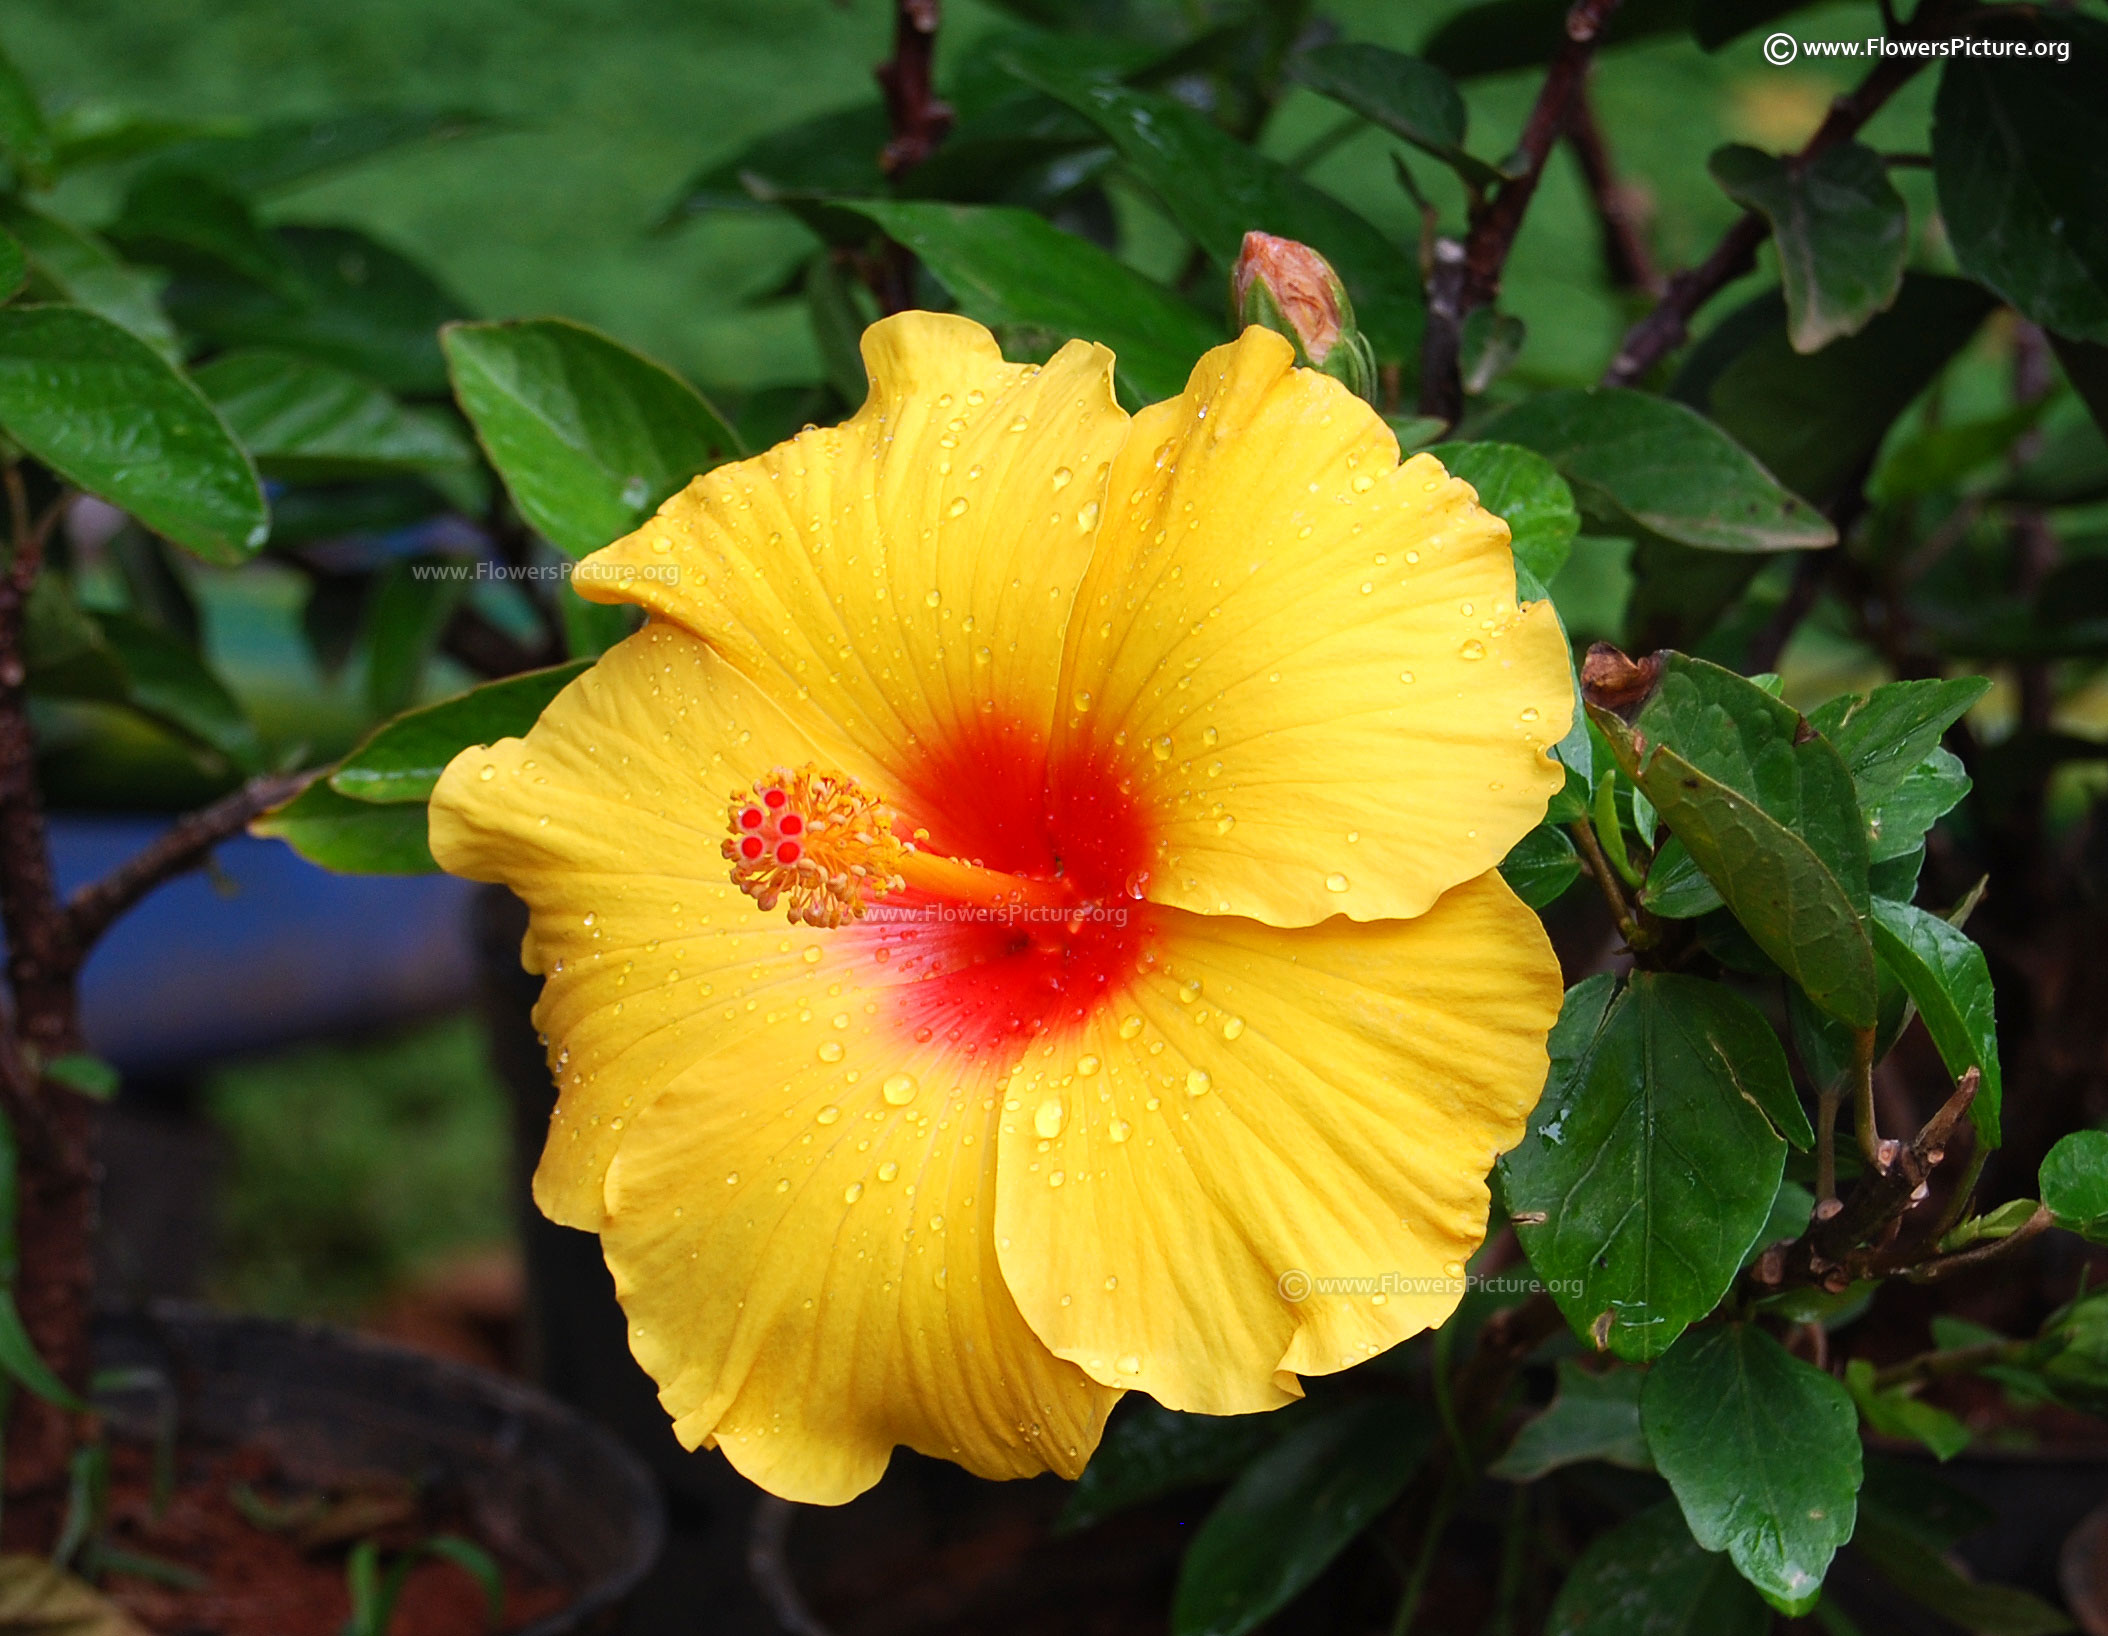 Hibiscus flower varieties hawaiian hibiscus yellow and red dhlflorist Image collections